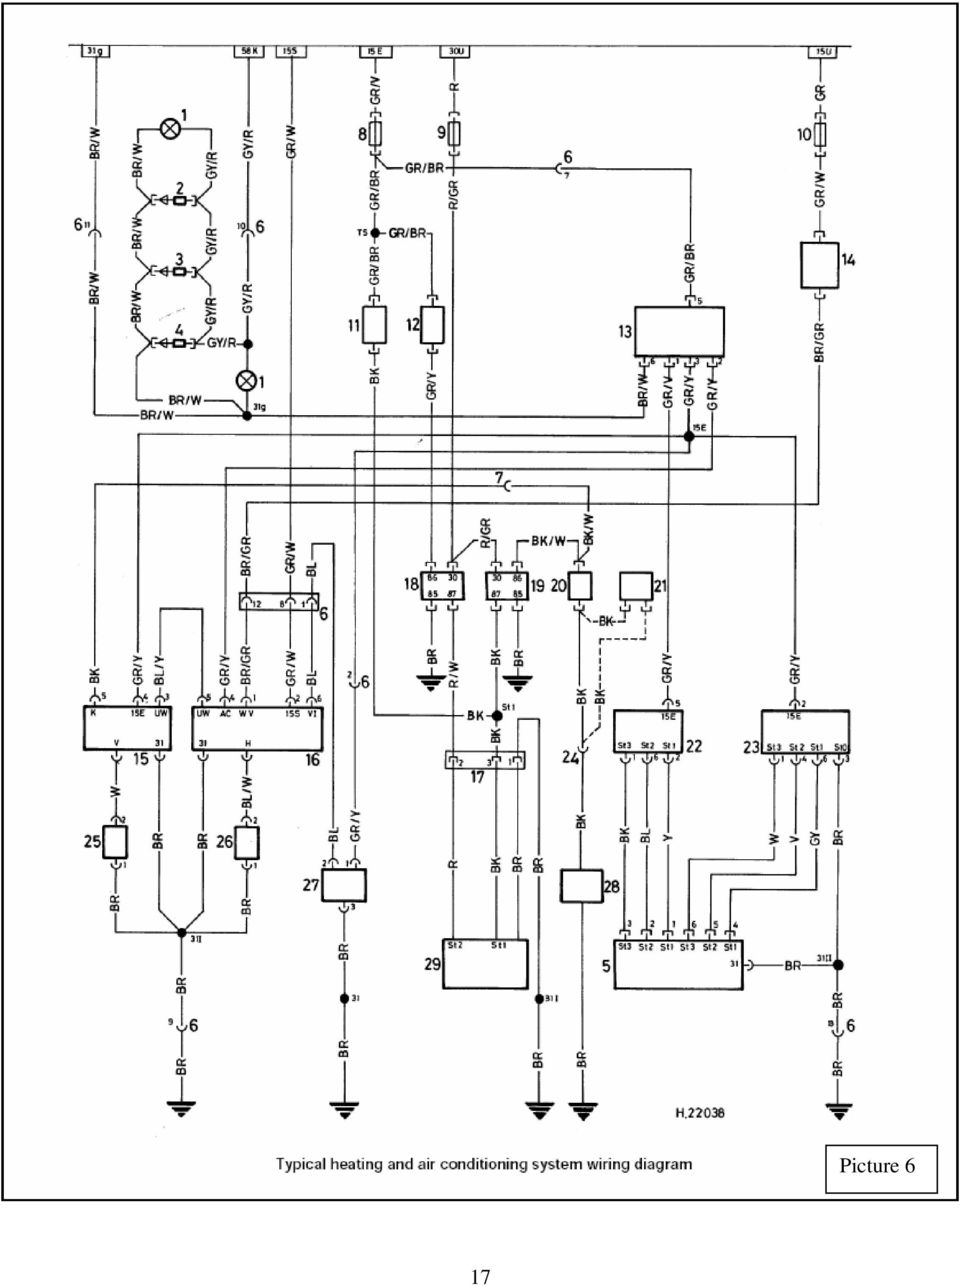 Colour Codes Diagrams Index Pdf Wiring Diagram 1 Switch 3 Lights 18 Key To Air Conditioning System Picture 6 Light For Heater Controls 2 Diode Iii Ii 4 I 5